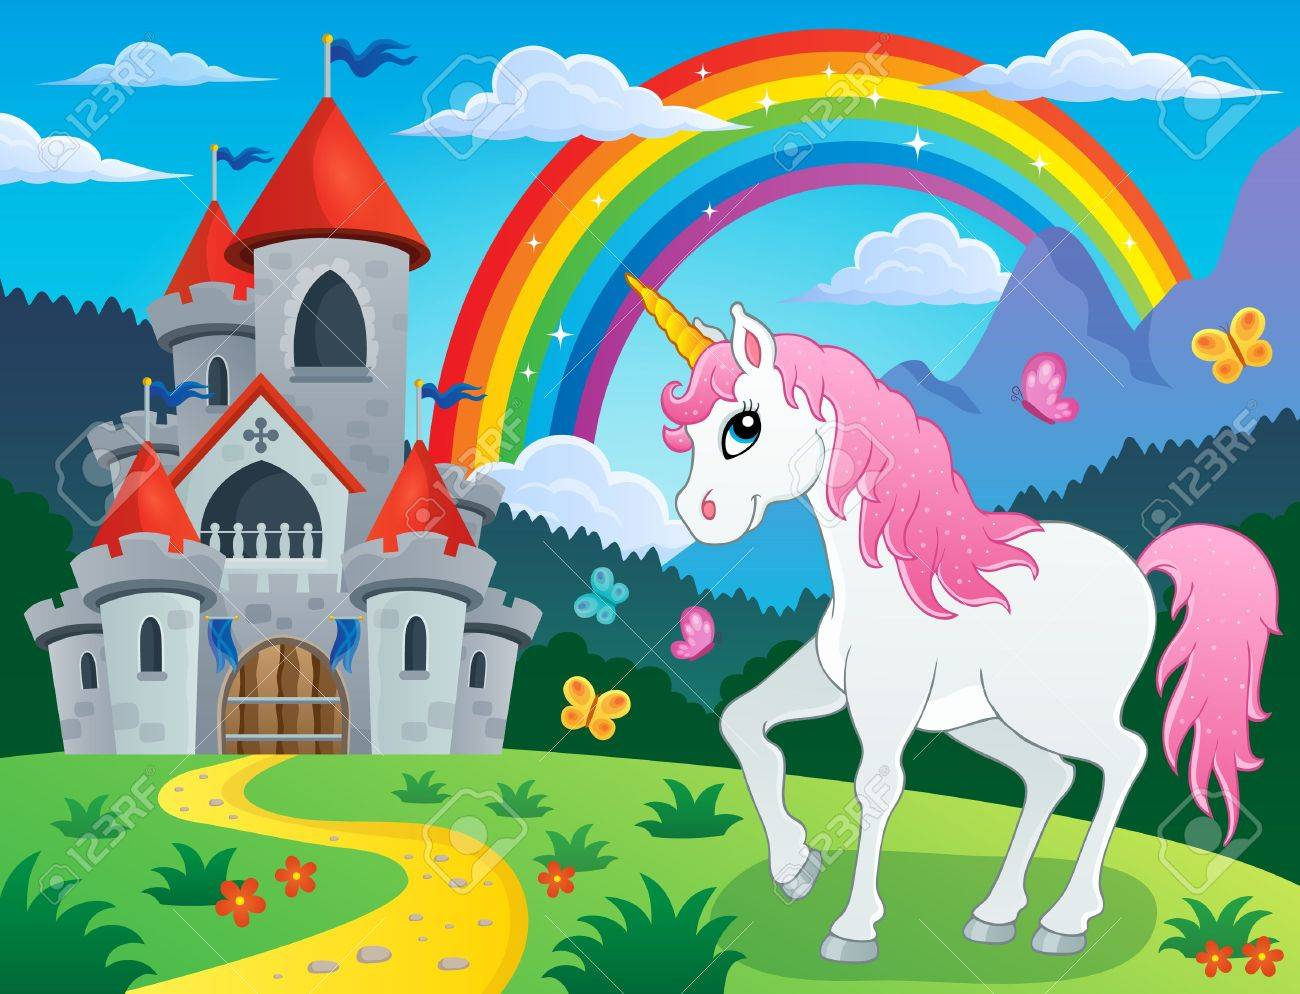 Fairy tale unicorn theme image 4 - eps10 vector illustration. Stock Vector - 41849142